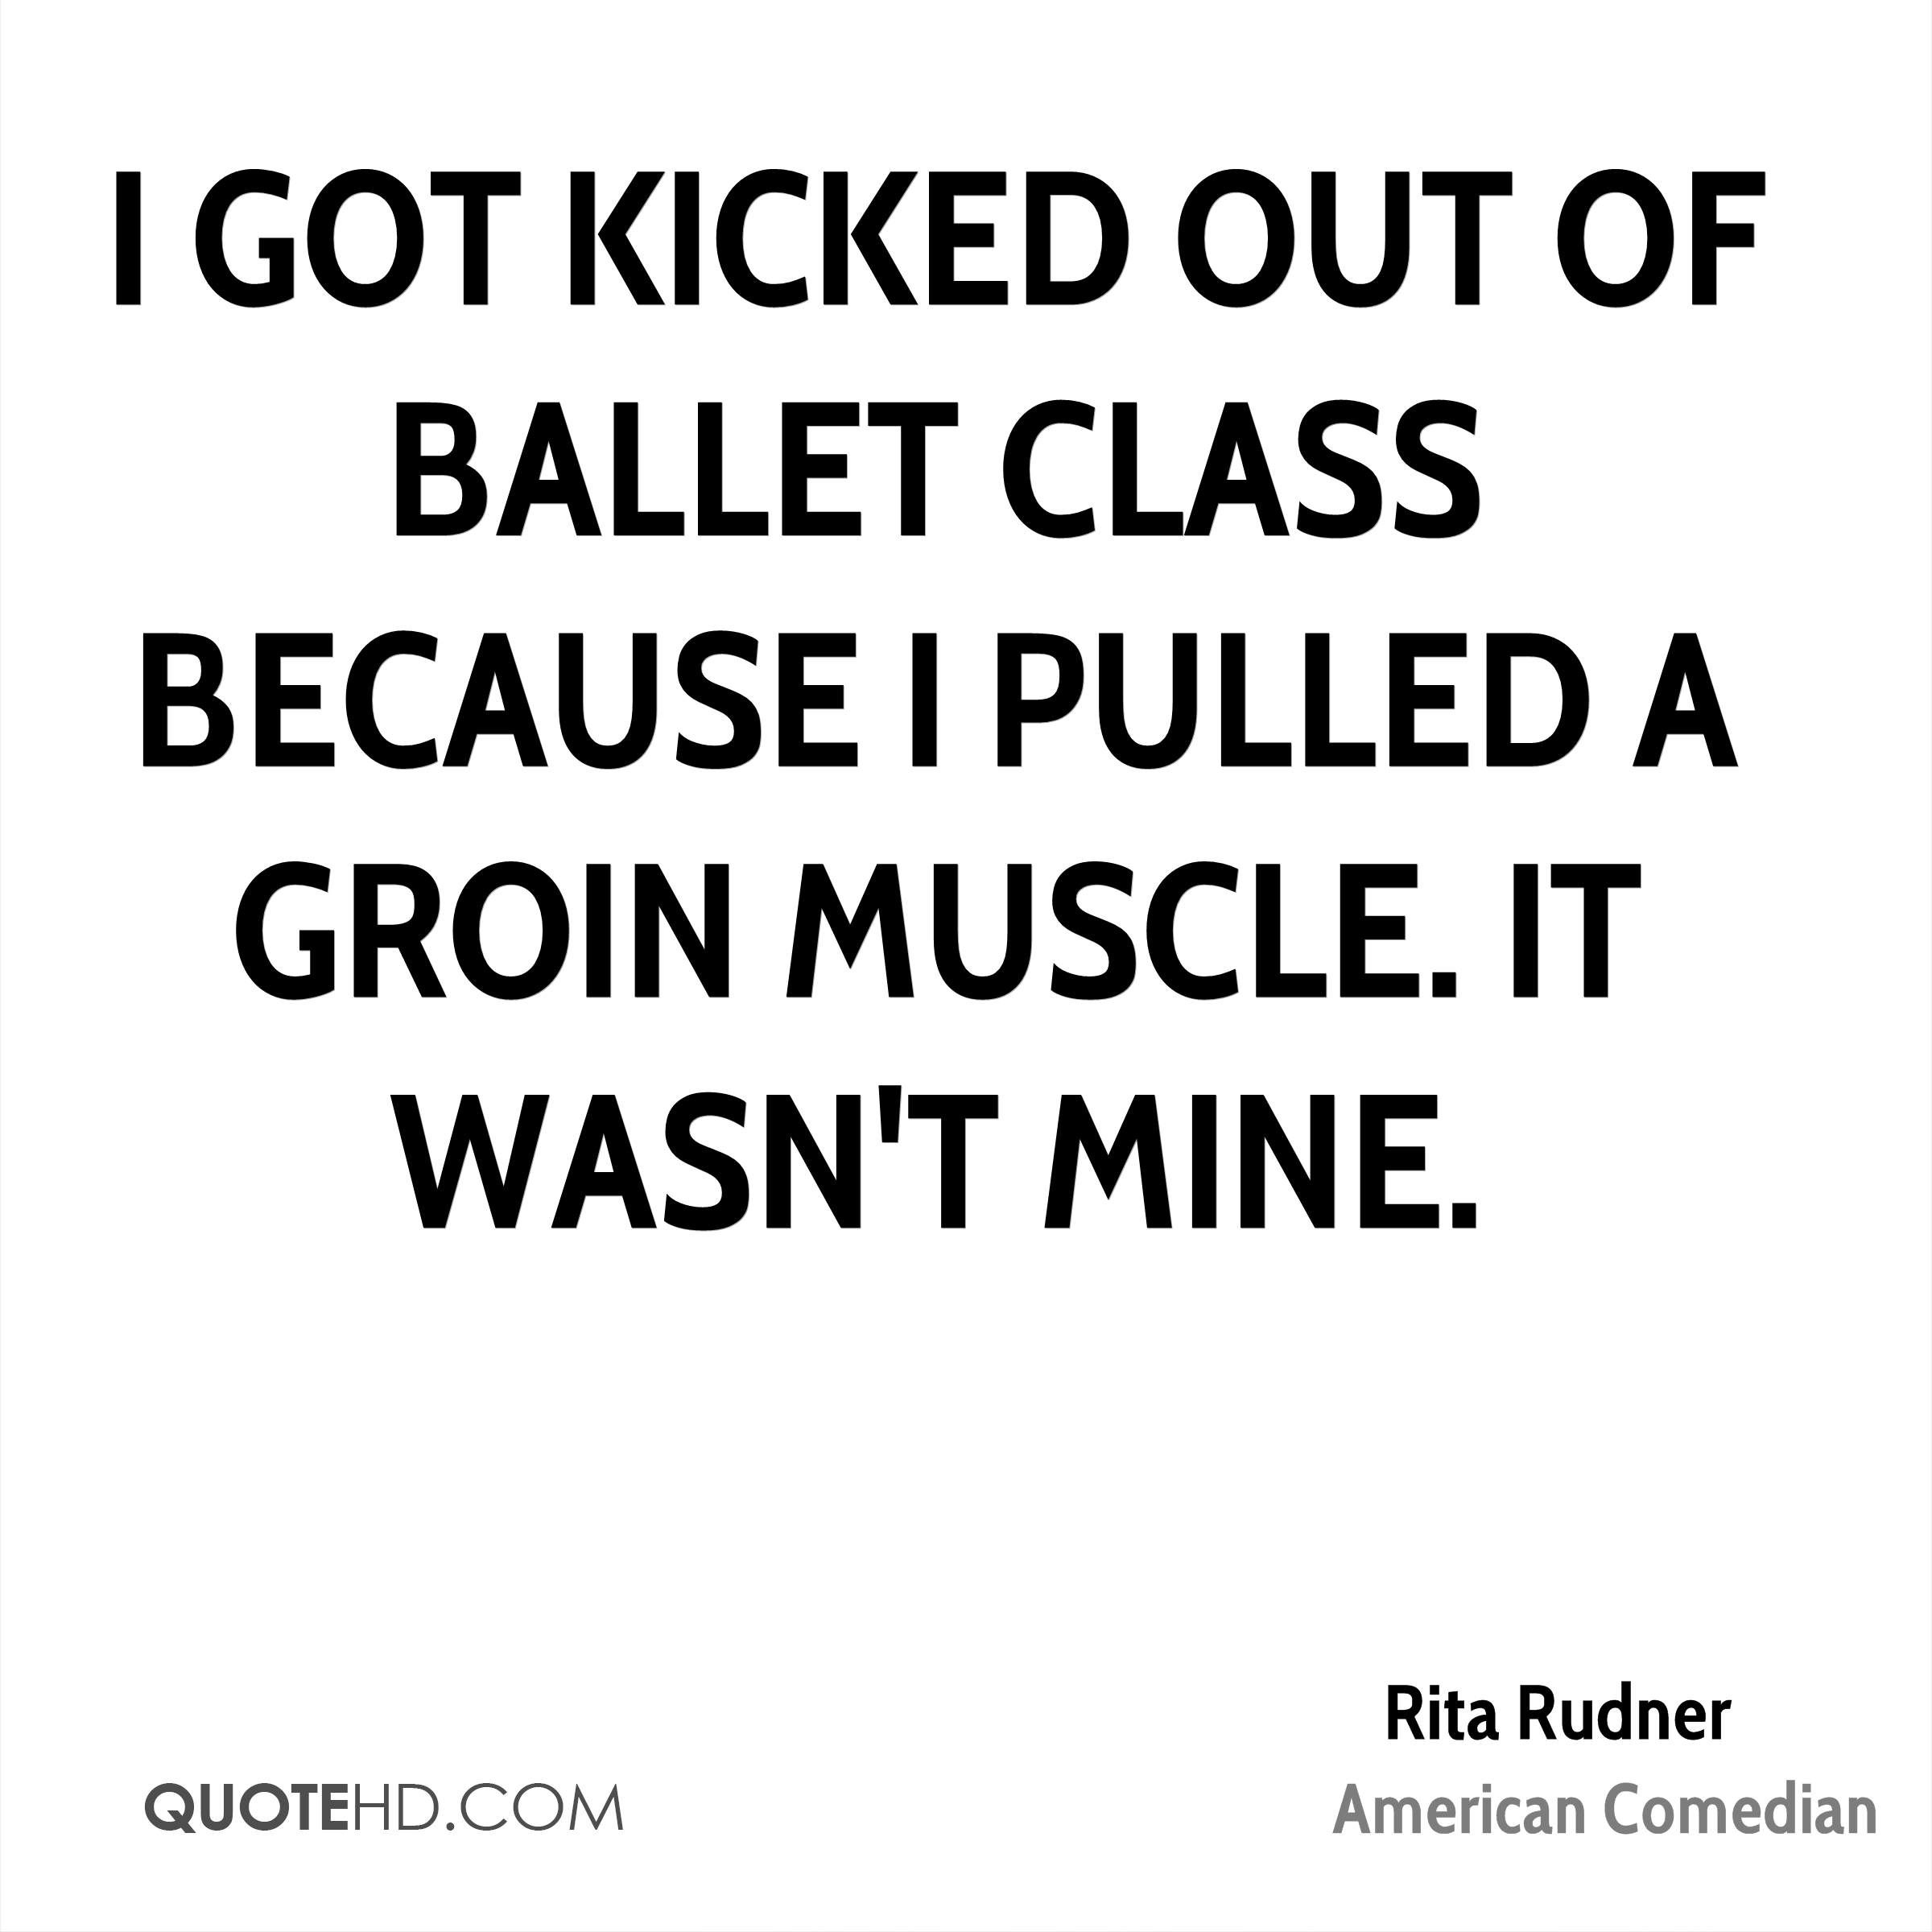 I got kicked out of ballet class because I pulled a groin muscle. It wasn't mine.